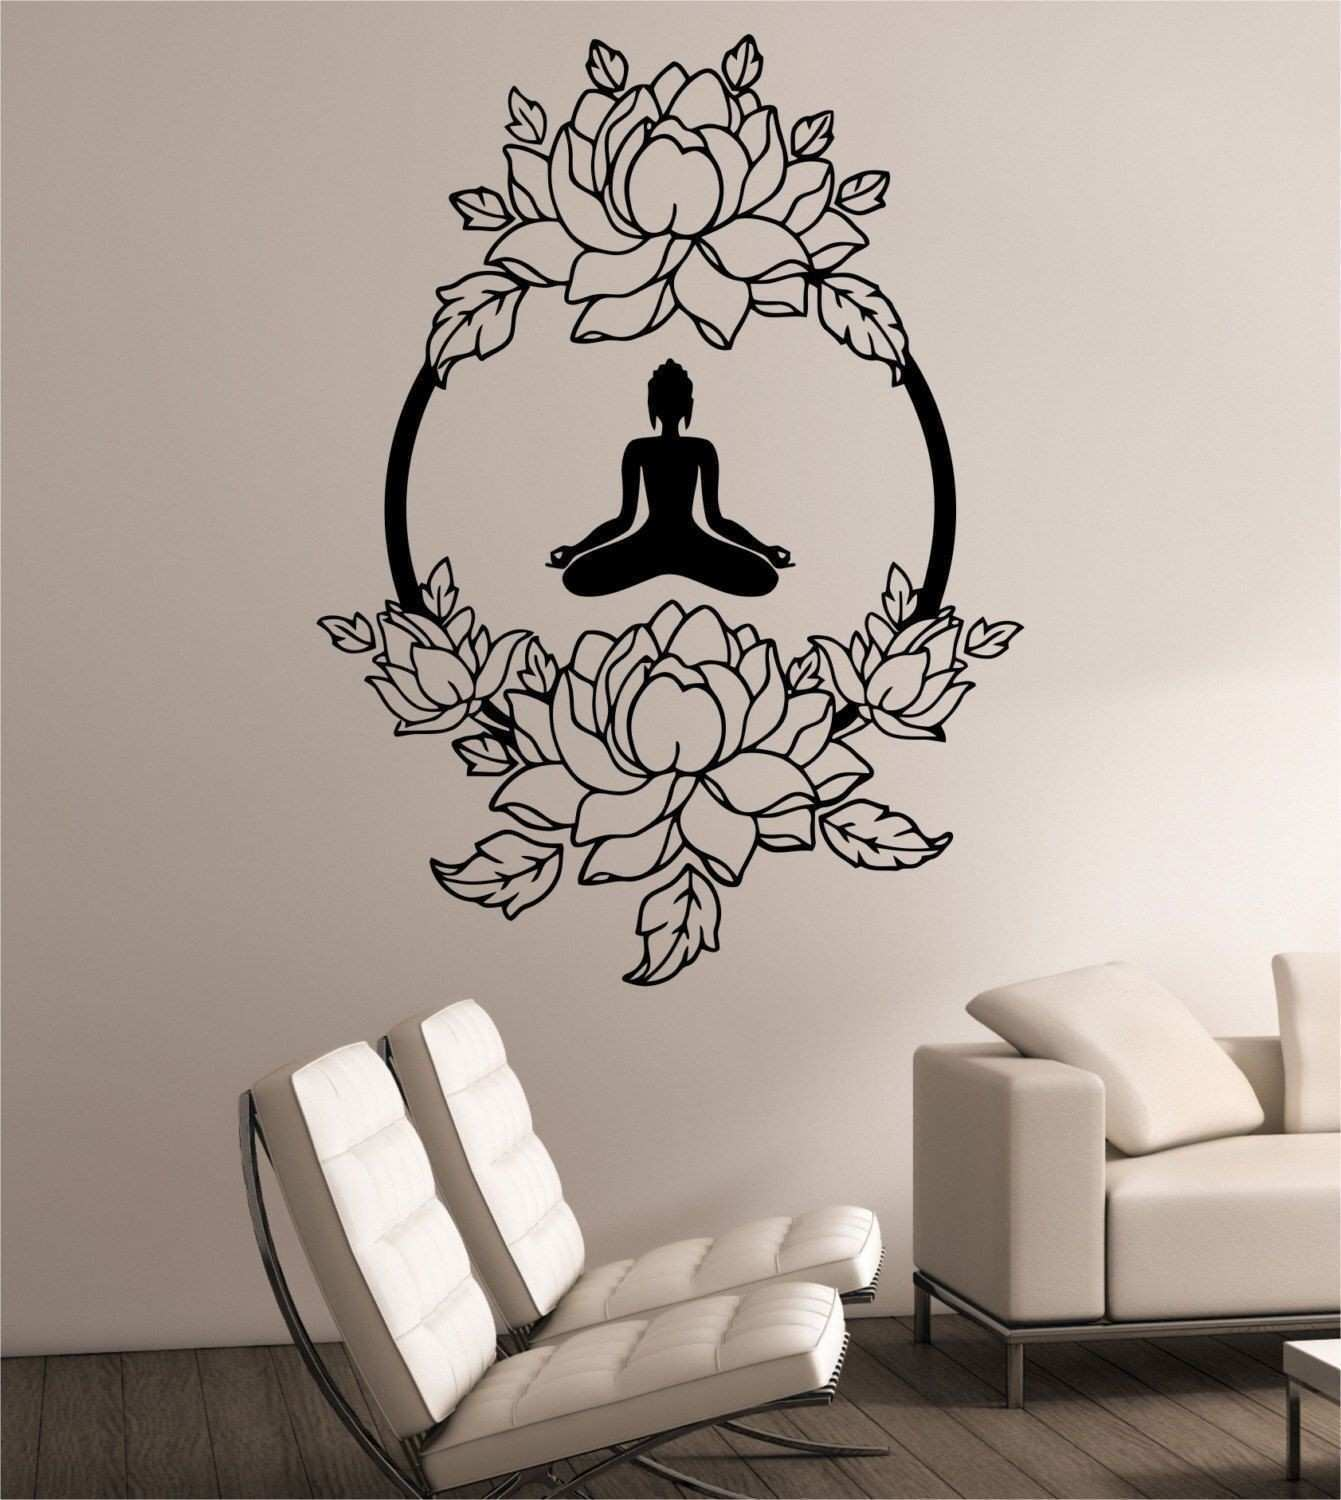 New Design Your Own Vinyl Wall Decal